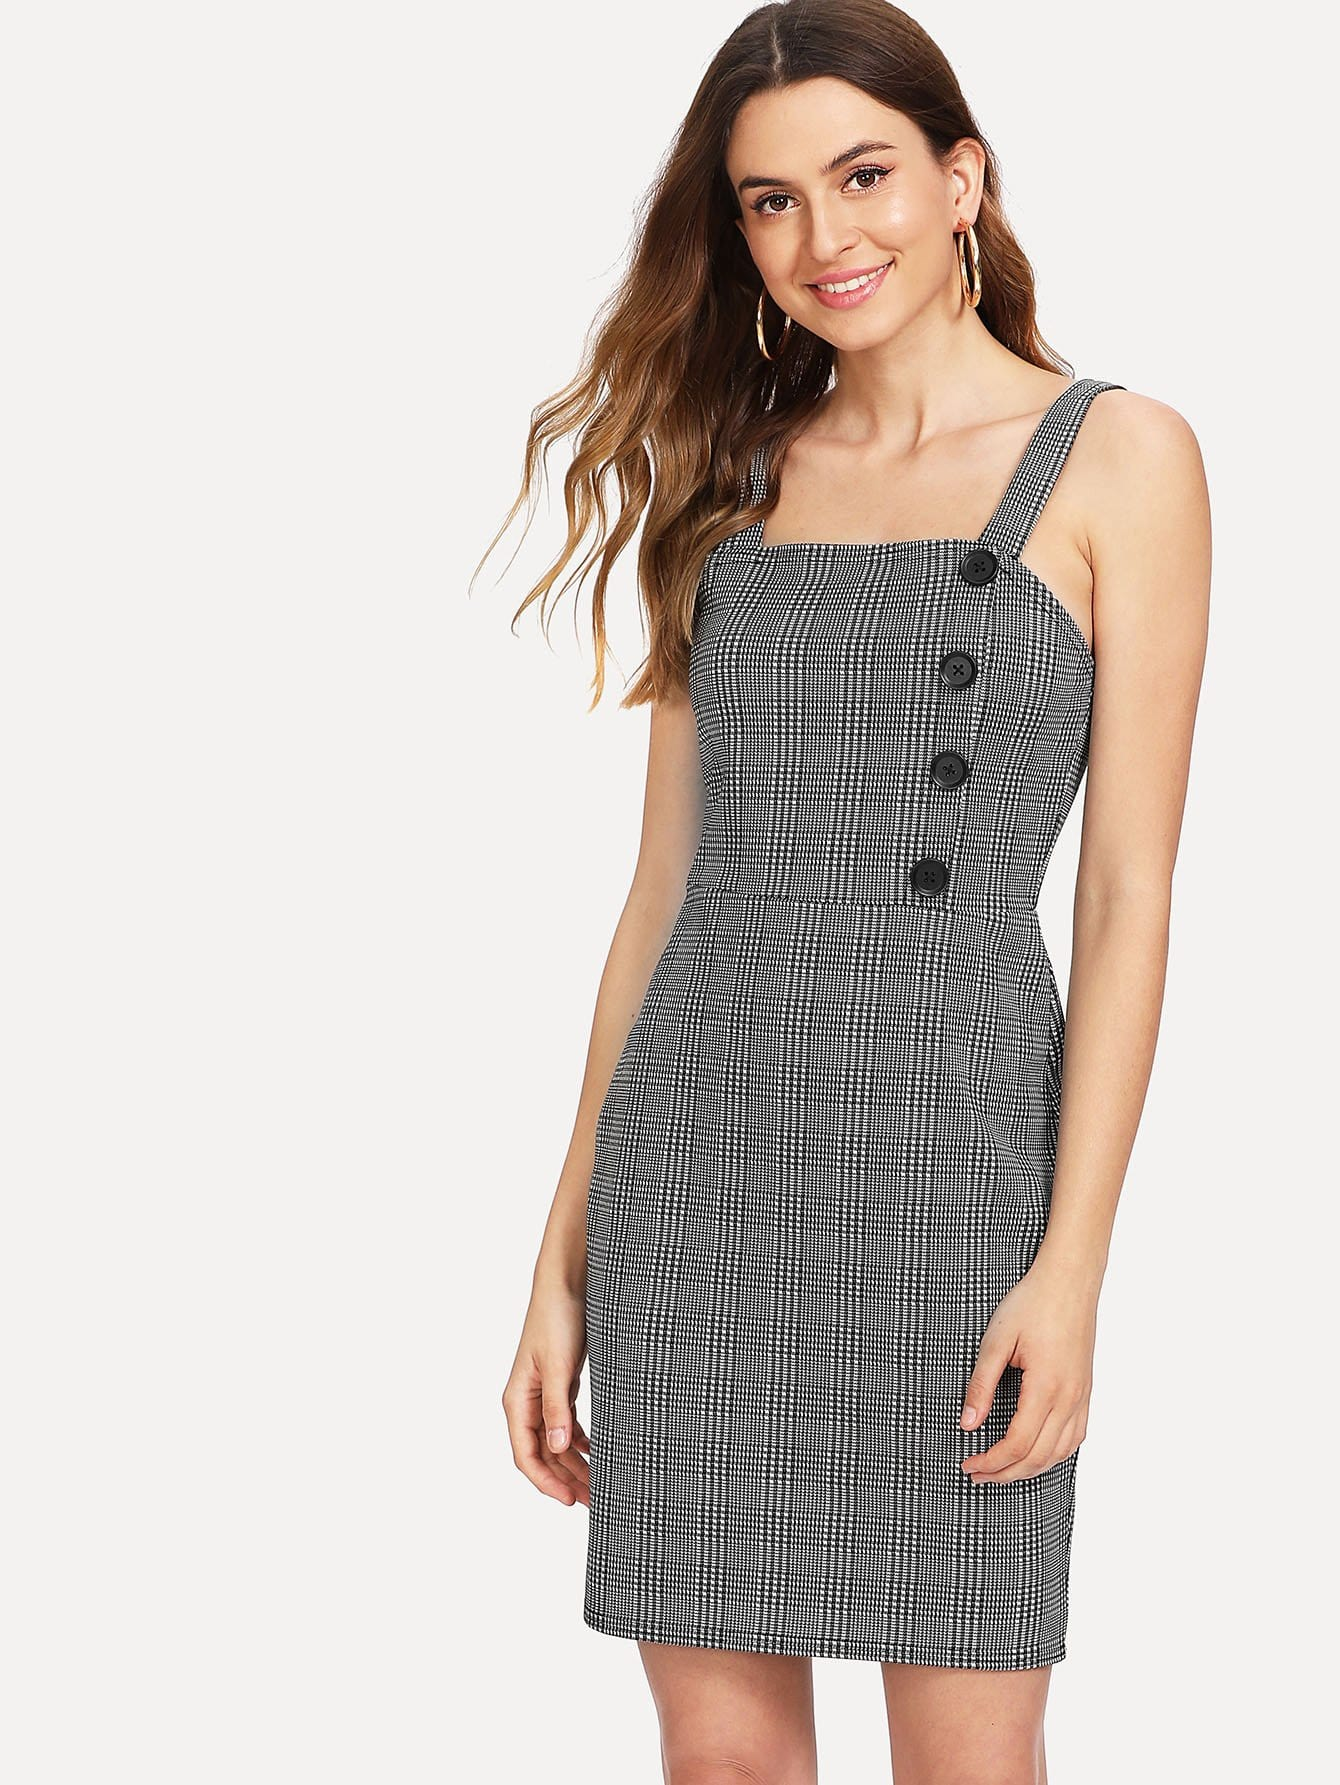 Single Breasted Side Checked Dress 85mm 33 meters 0 08mm single side high